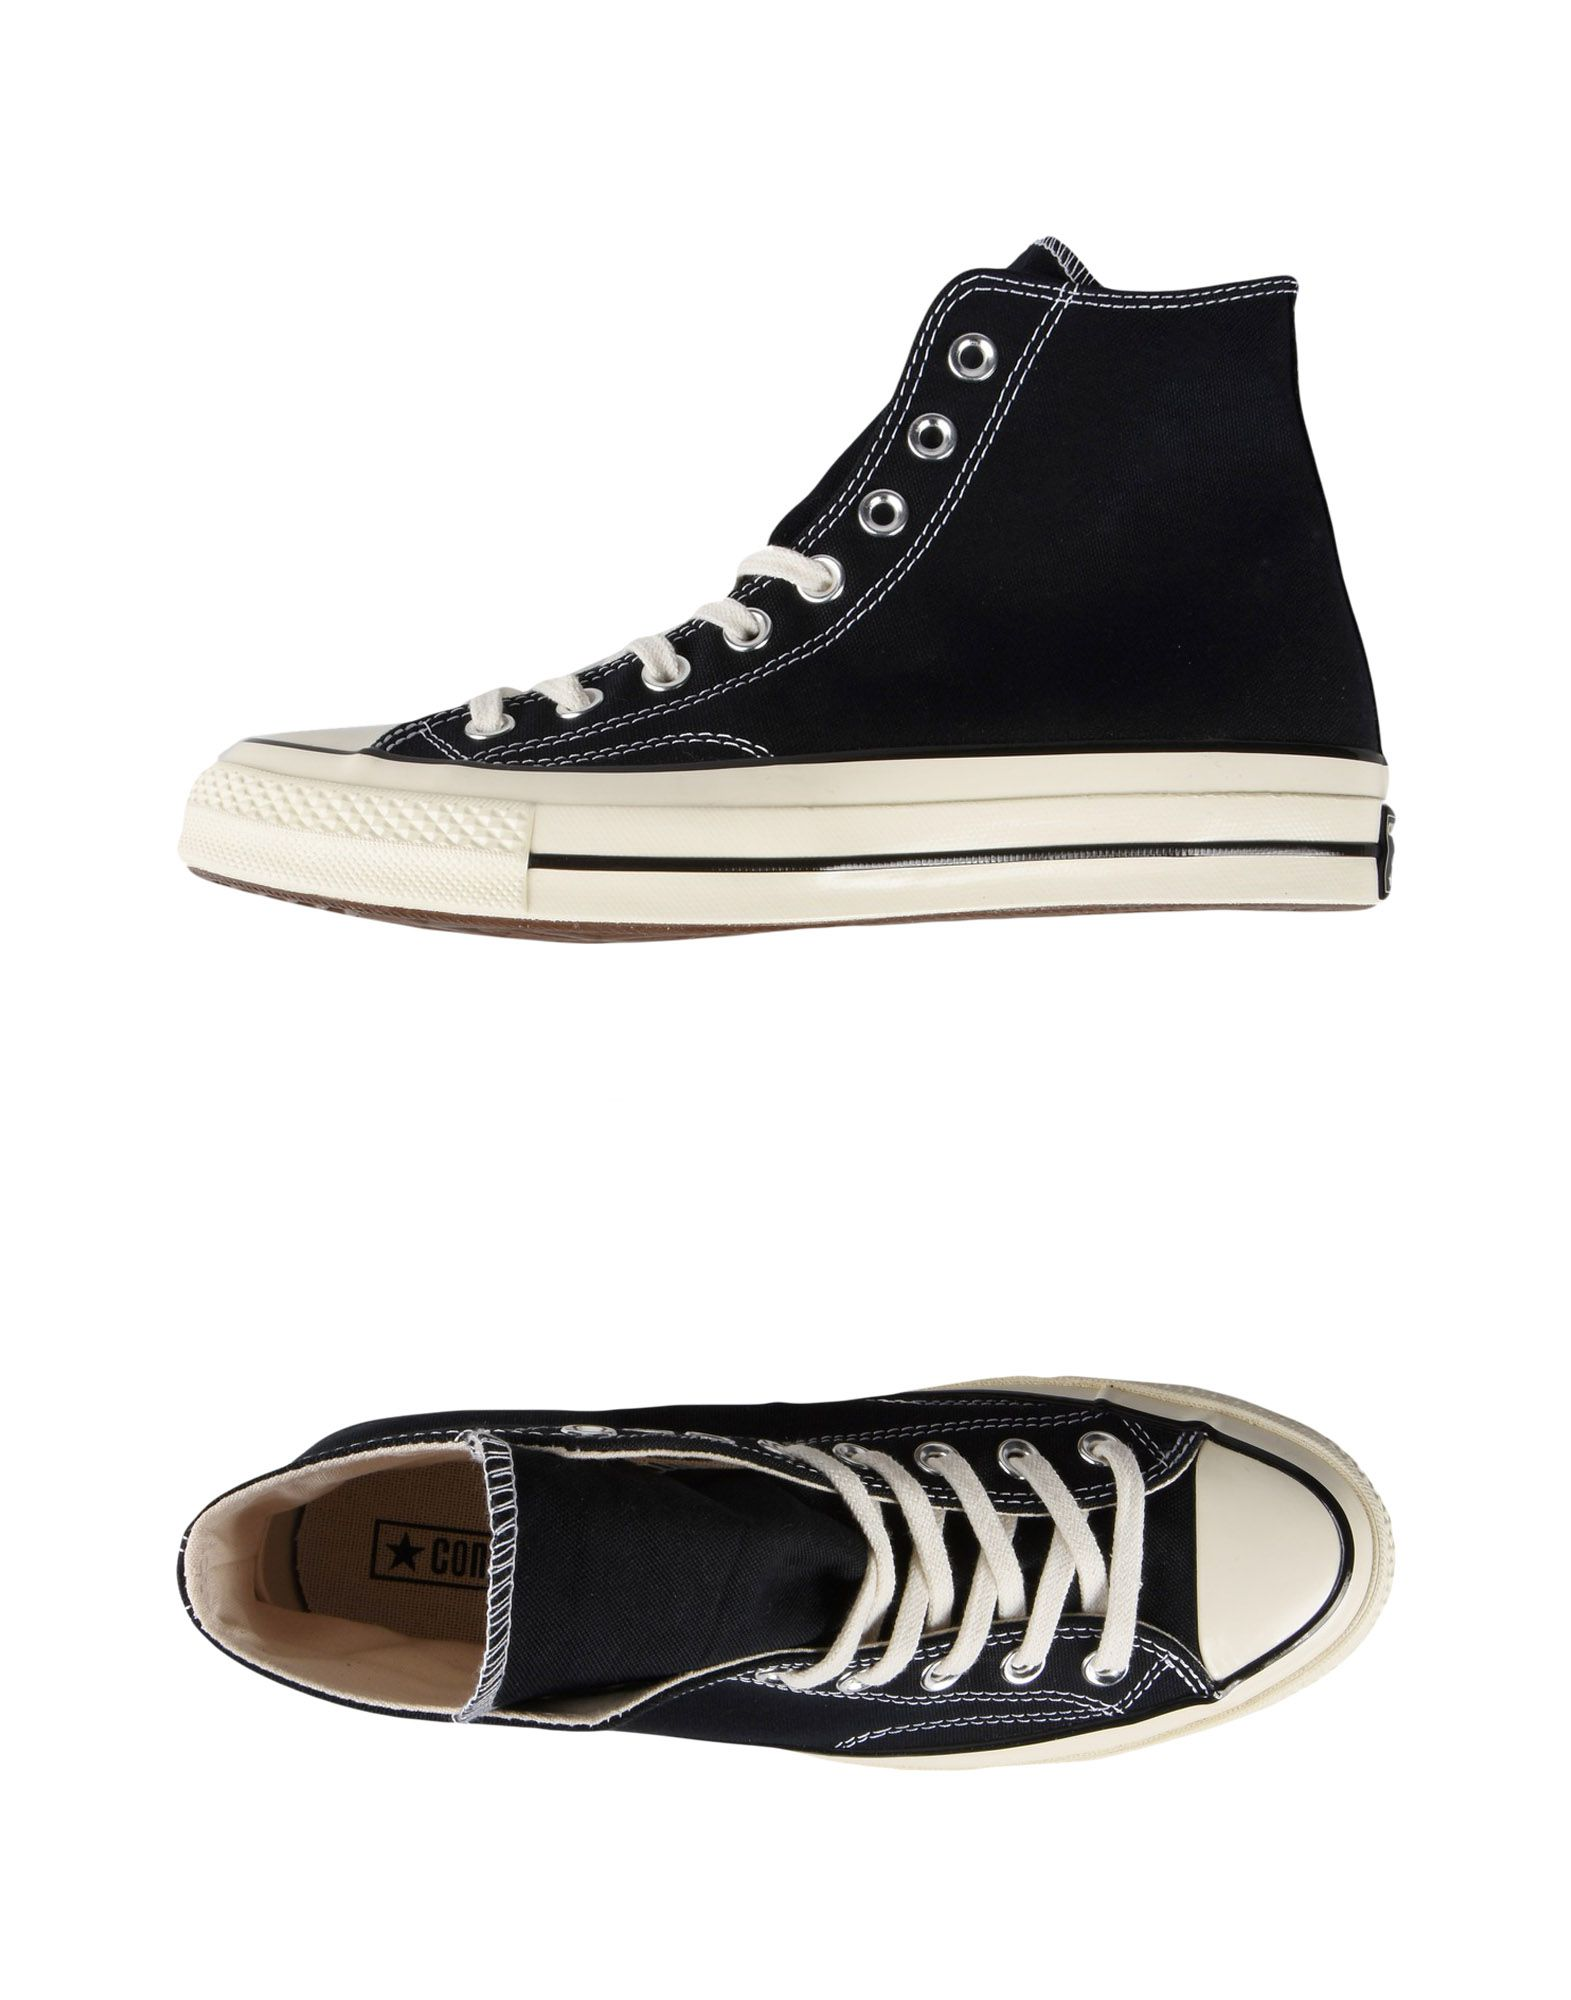 Sneakers Converse All Star Ct As Hi 70S Canvas - Donna - Acquista online su